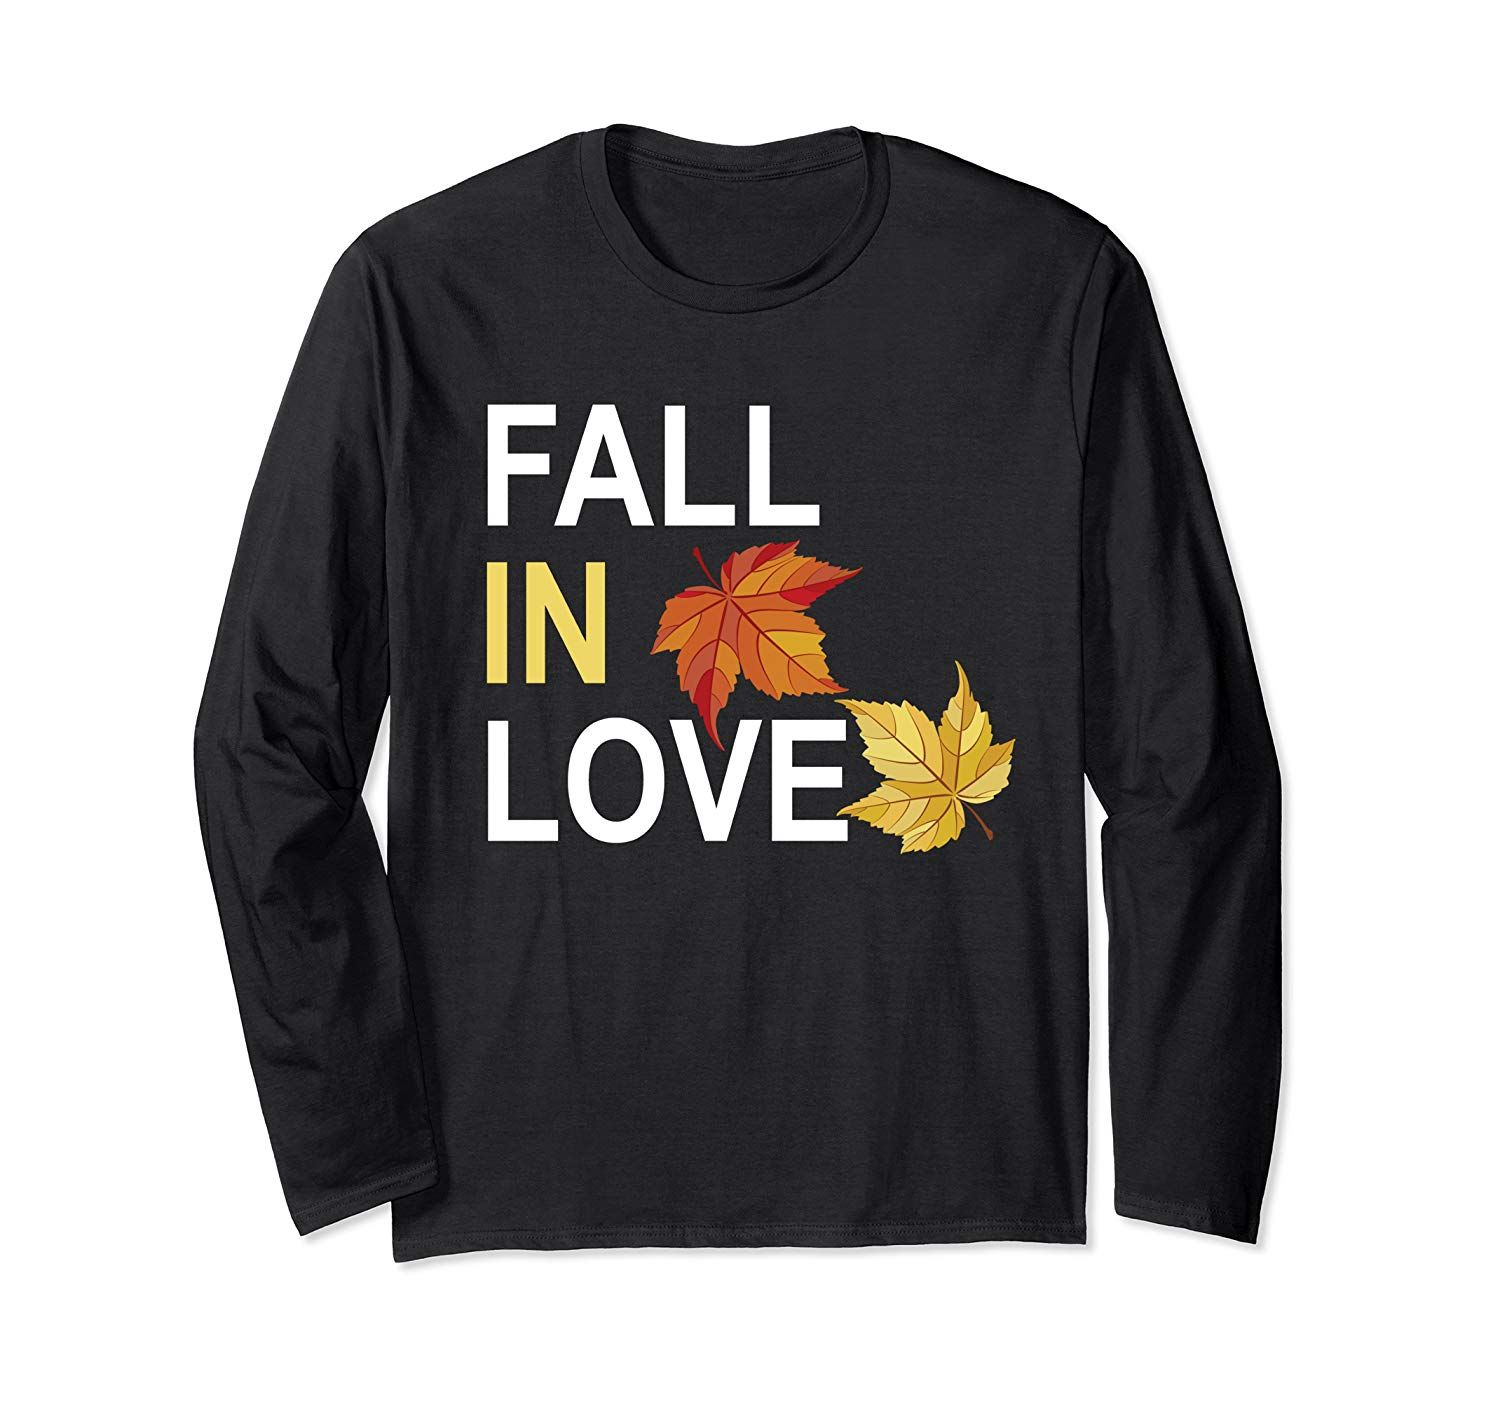 Fall in Love Shirt,Hello Autumn Leaves and Pumpkin Please Long Sleeve T-Shirt #helloautumn